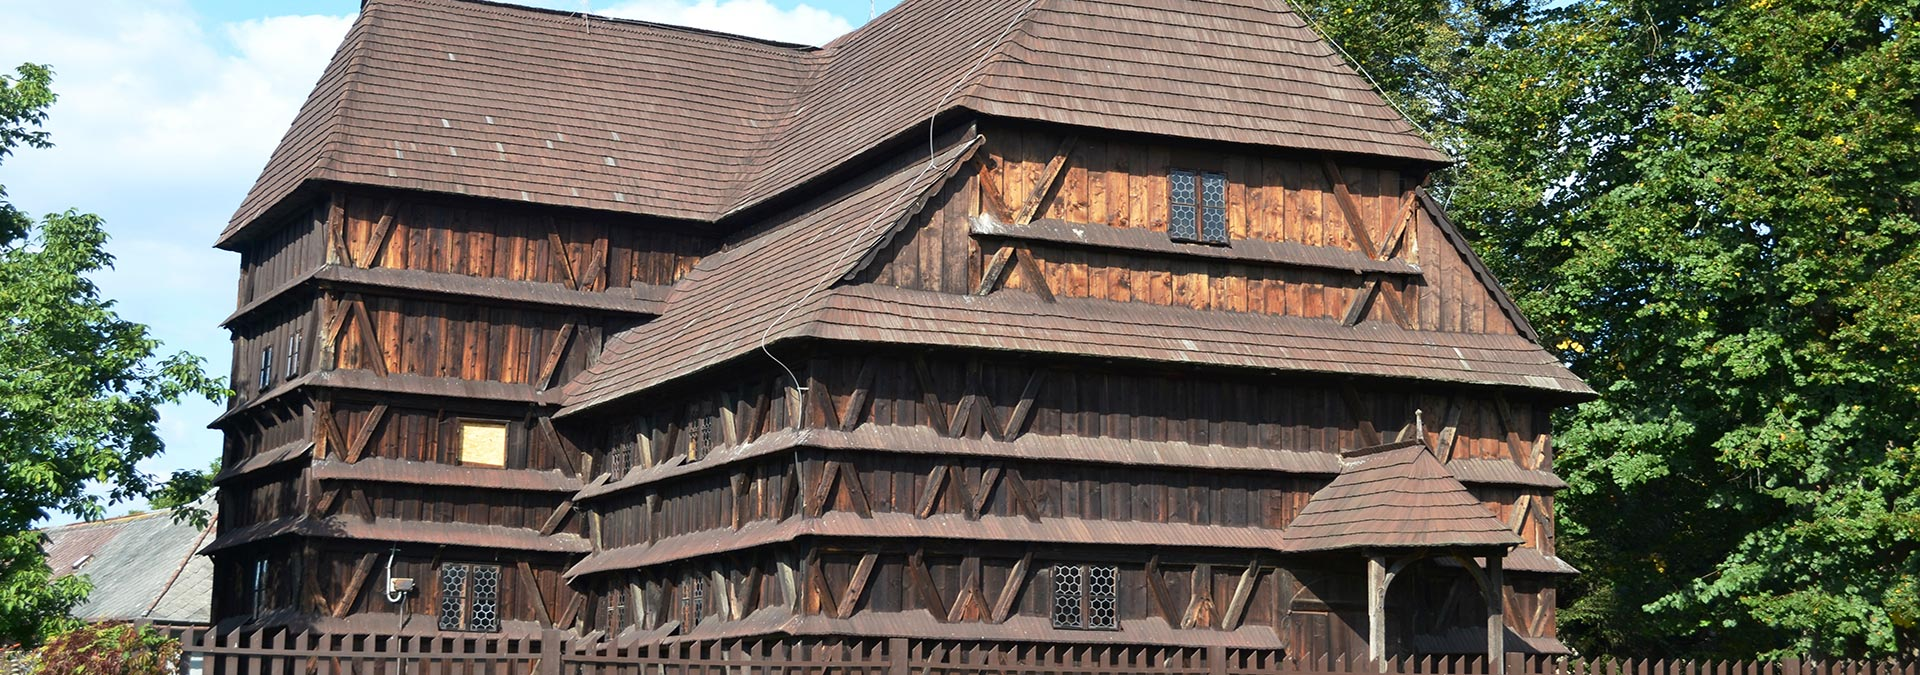 Tour of Wooden Churches of the Carpathian Mountains - Slovak UNESCO Heritage, Slovakia Travel, Location